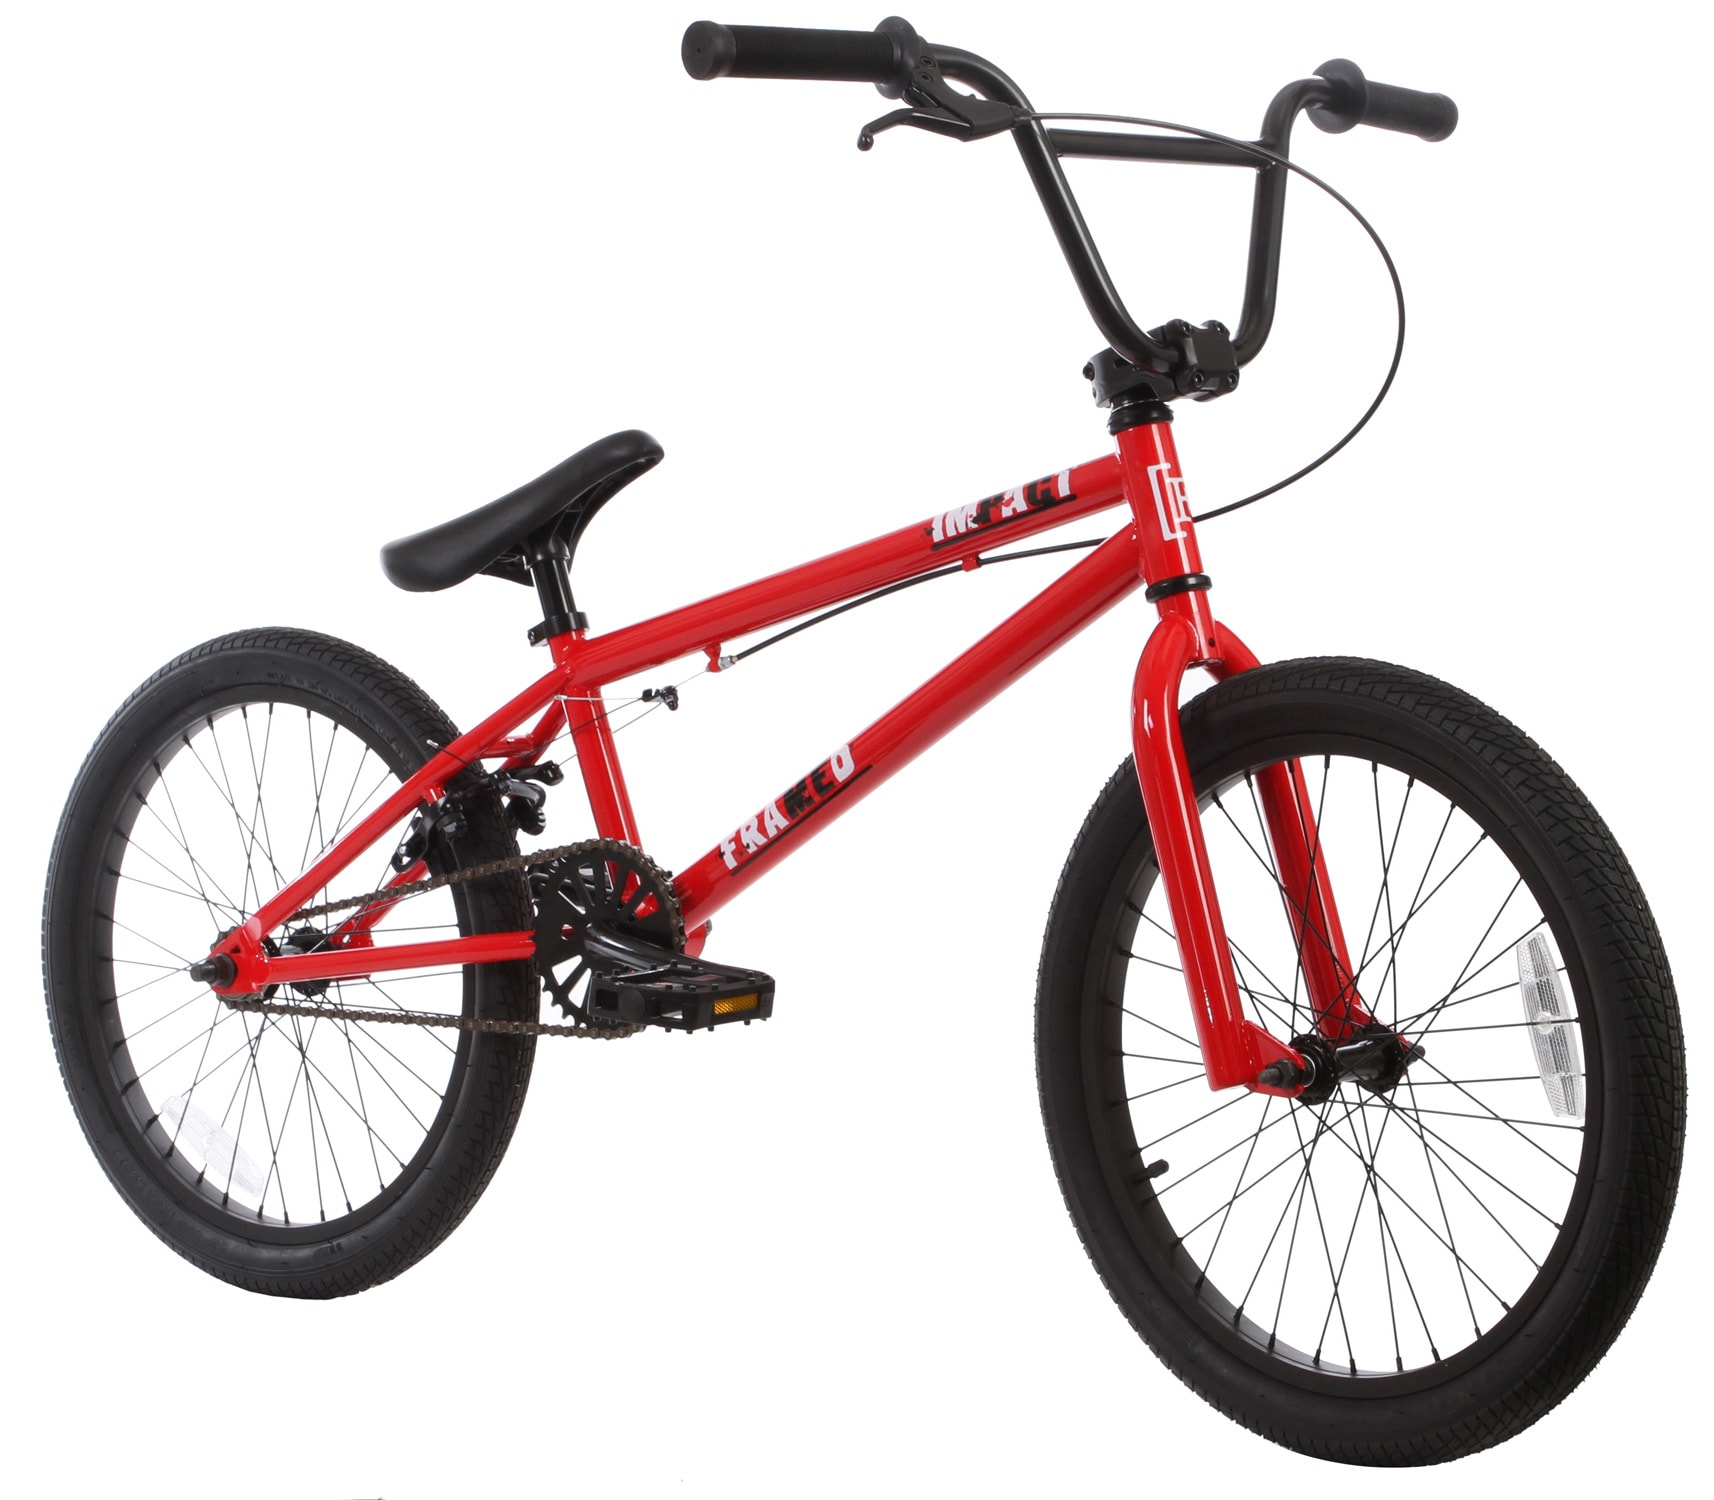 On Sale Framed Impact BMX Bike up to 50% off